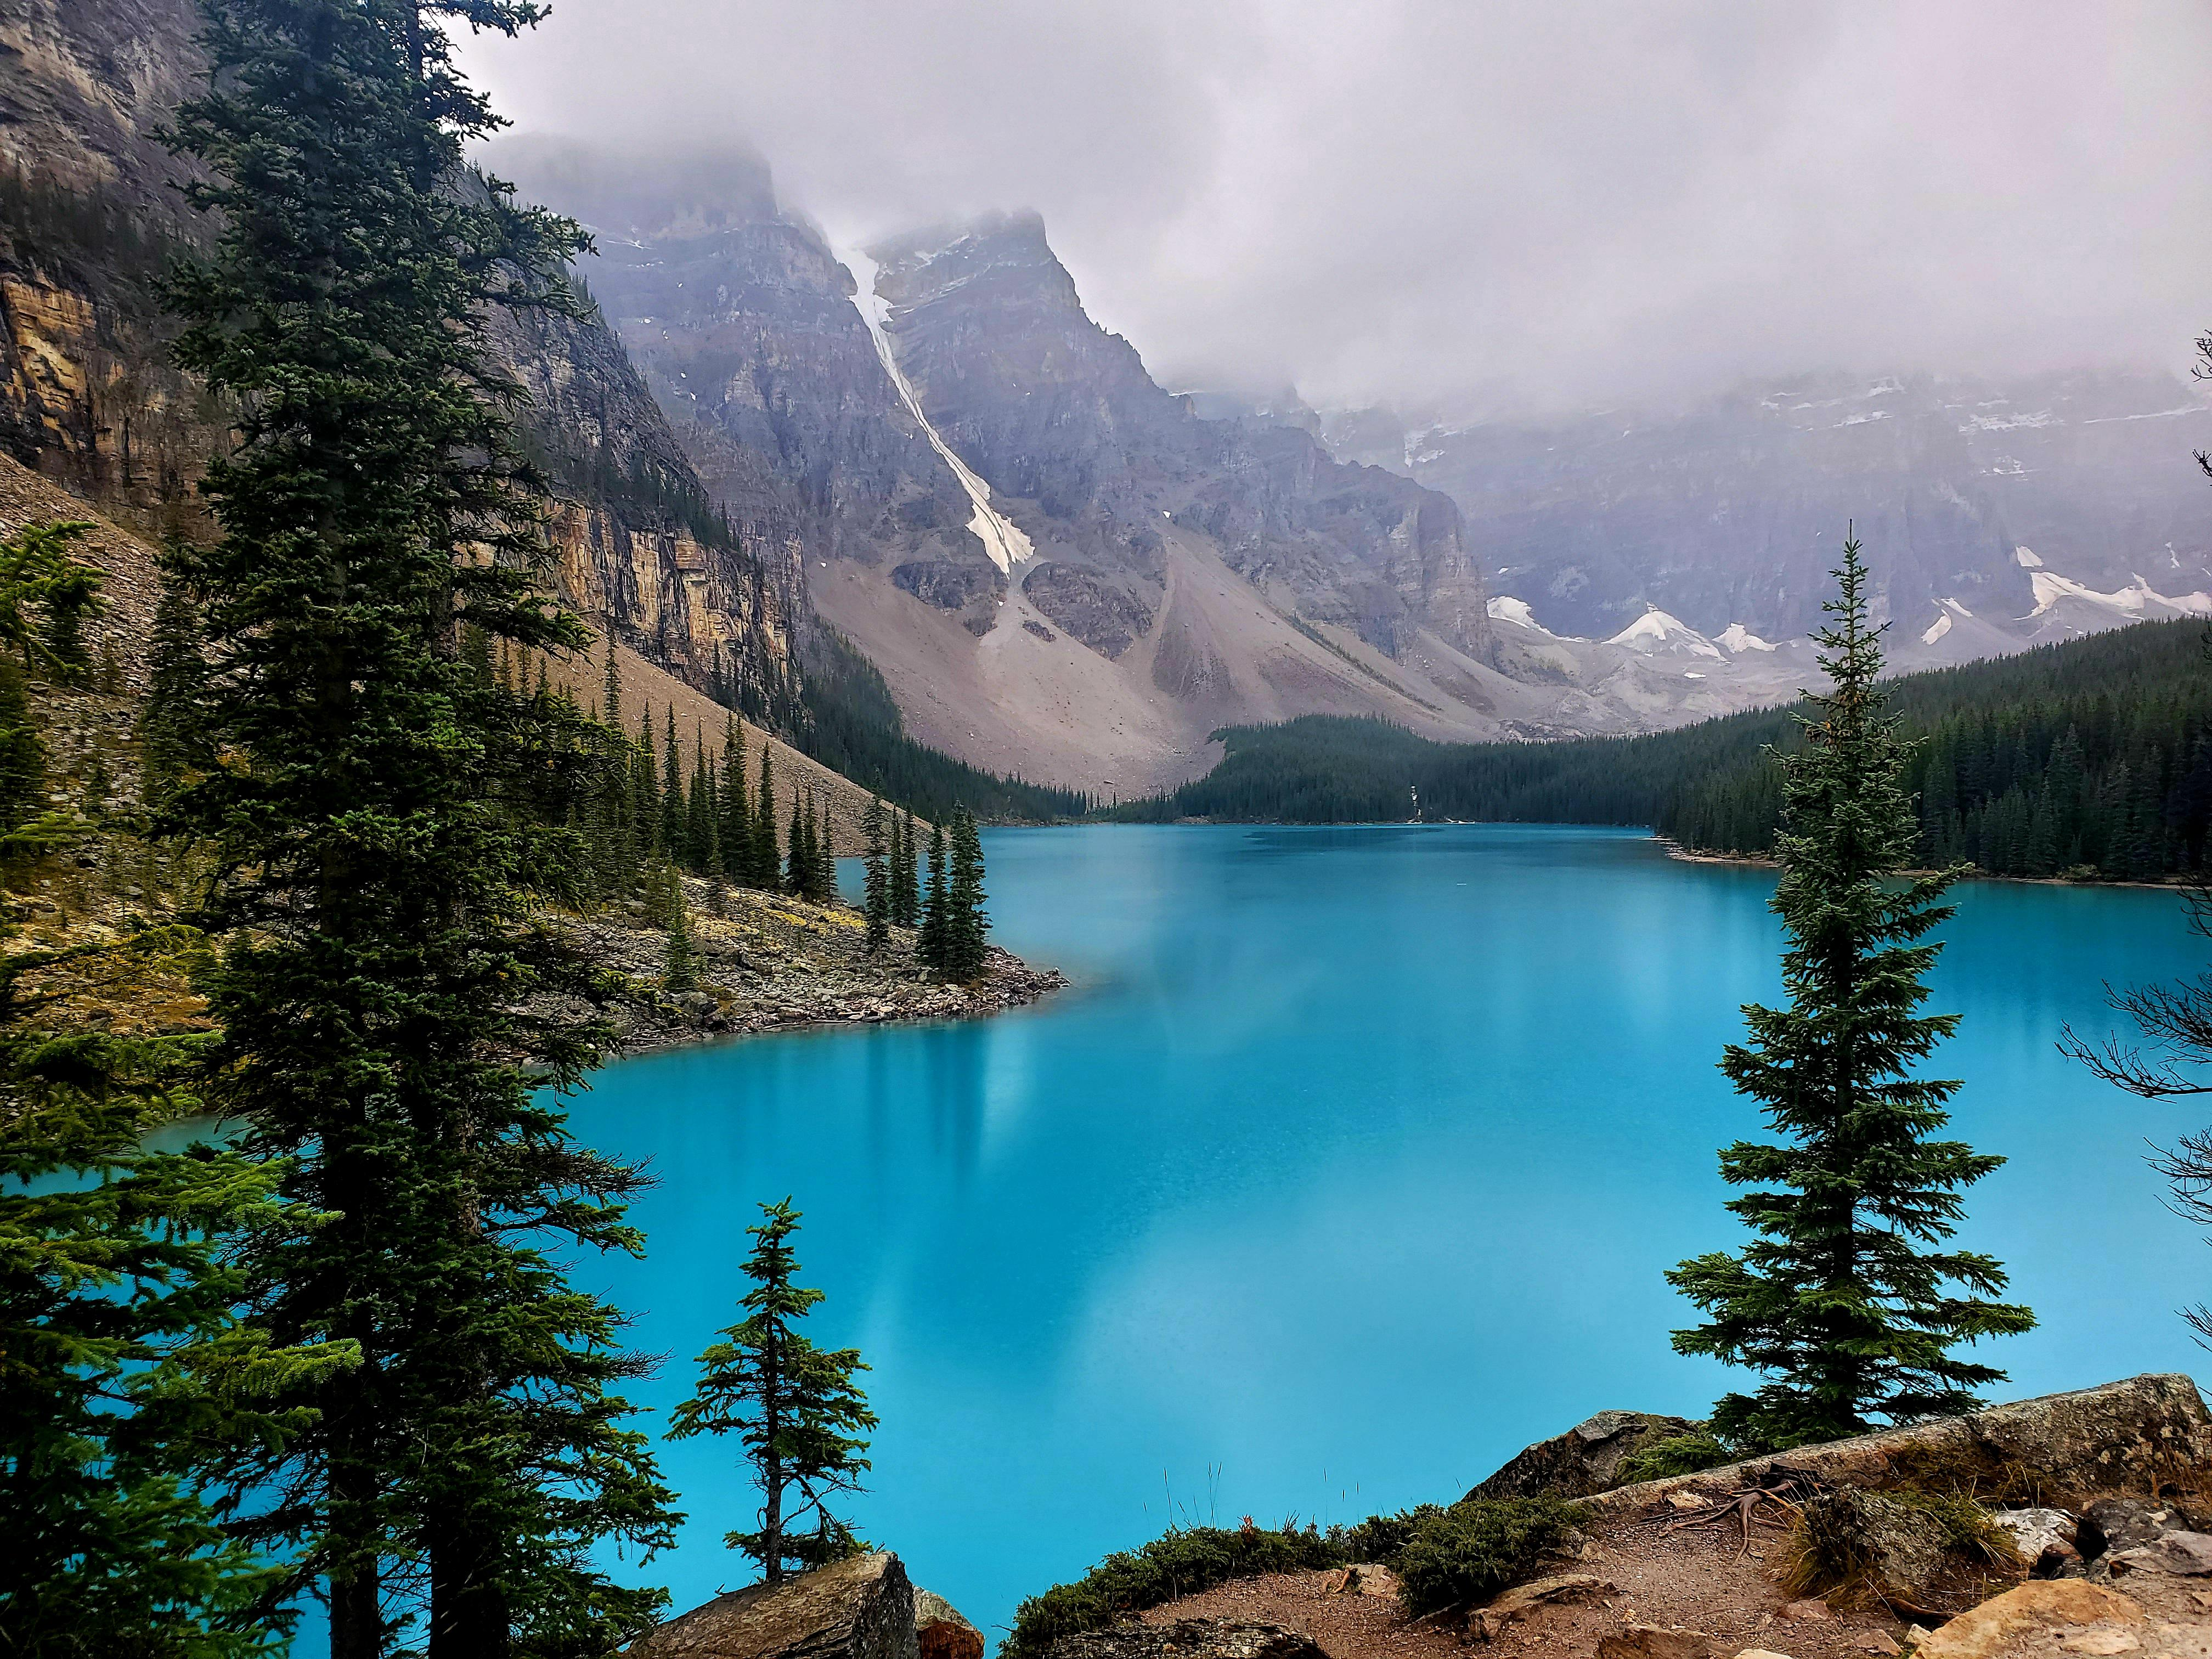 Moraine lake at Banff National Park in Alberta, Canada on a cloudy day